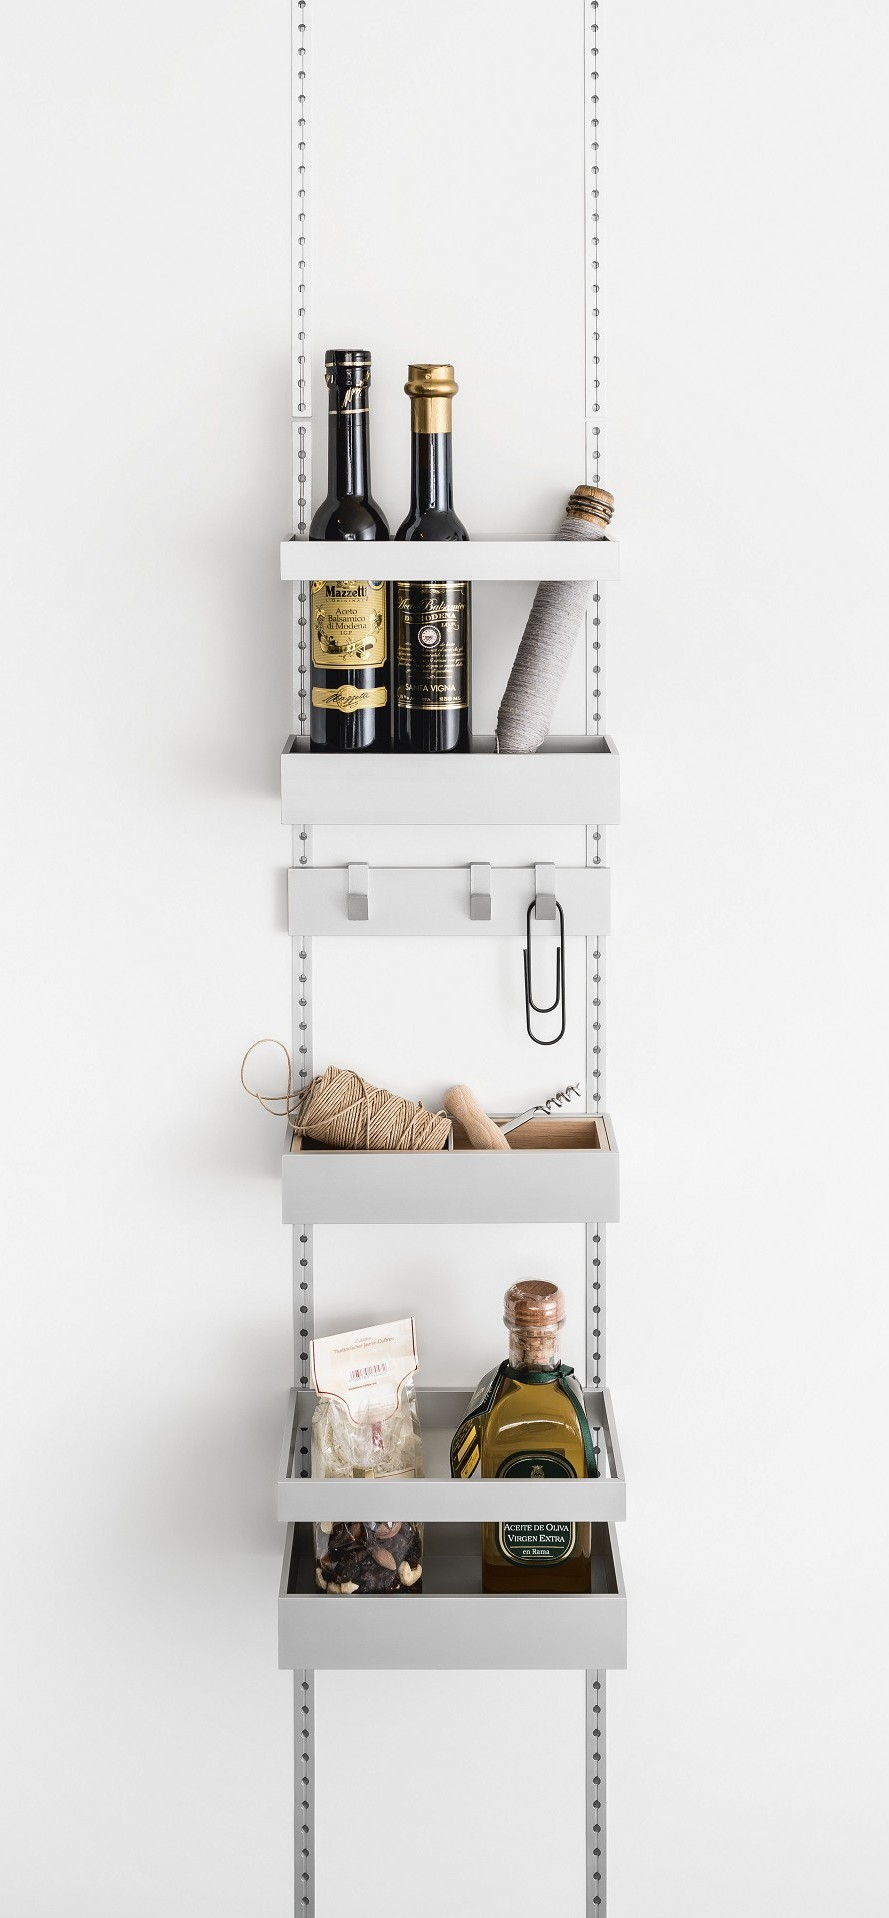 Storage trays and hook railing in the SieMatic MultiMatic interior organization system for jars, boxes and small items - even for narrow cabinet doors